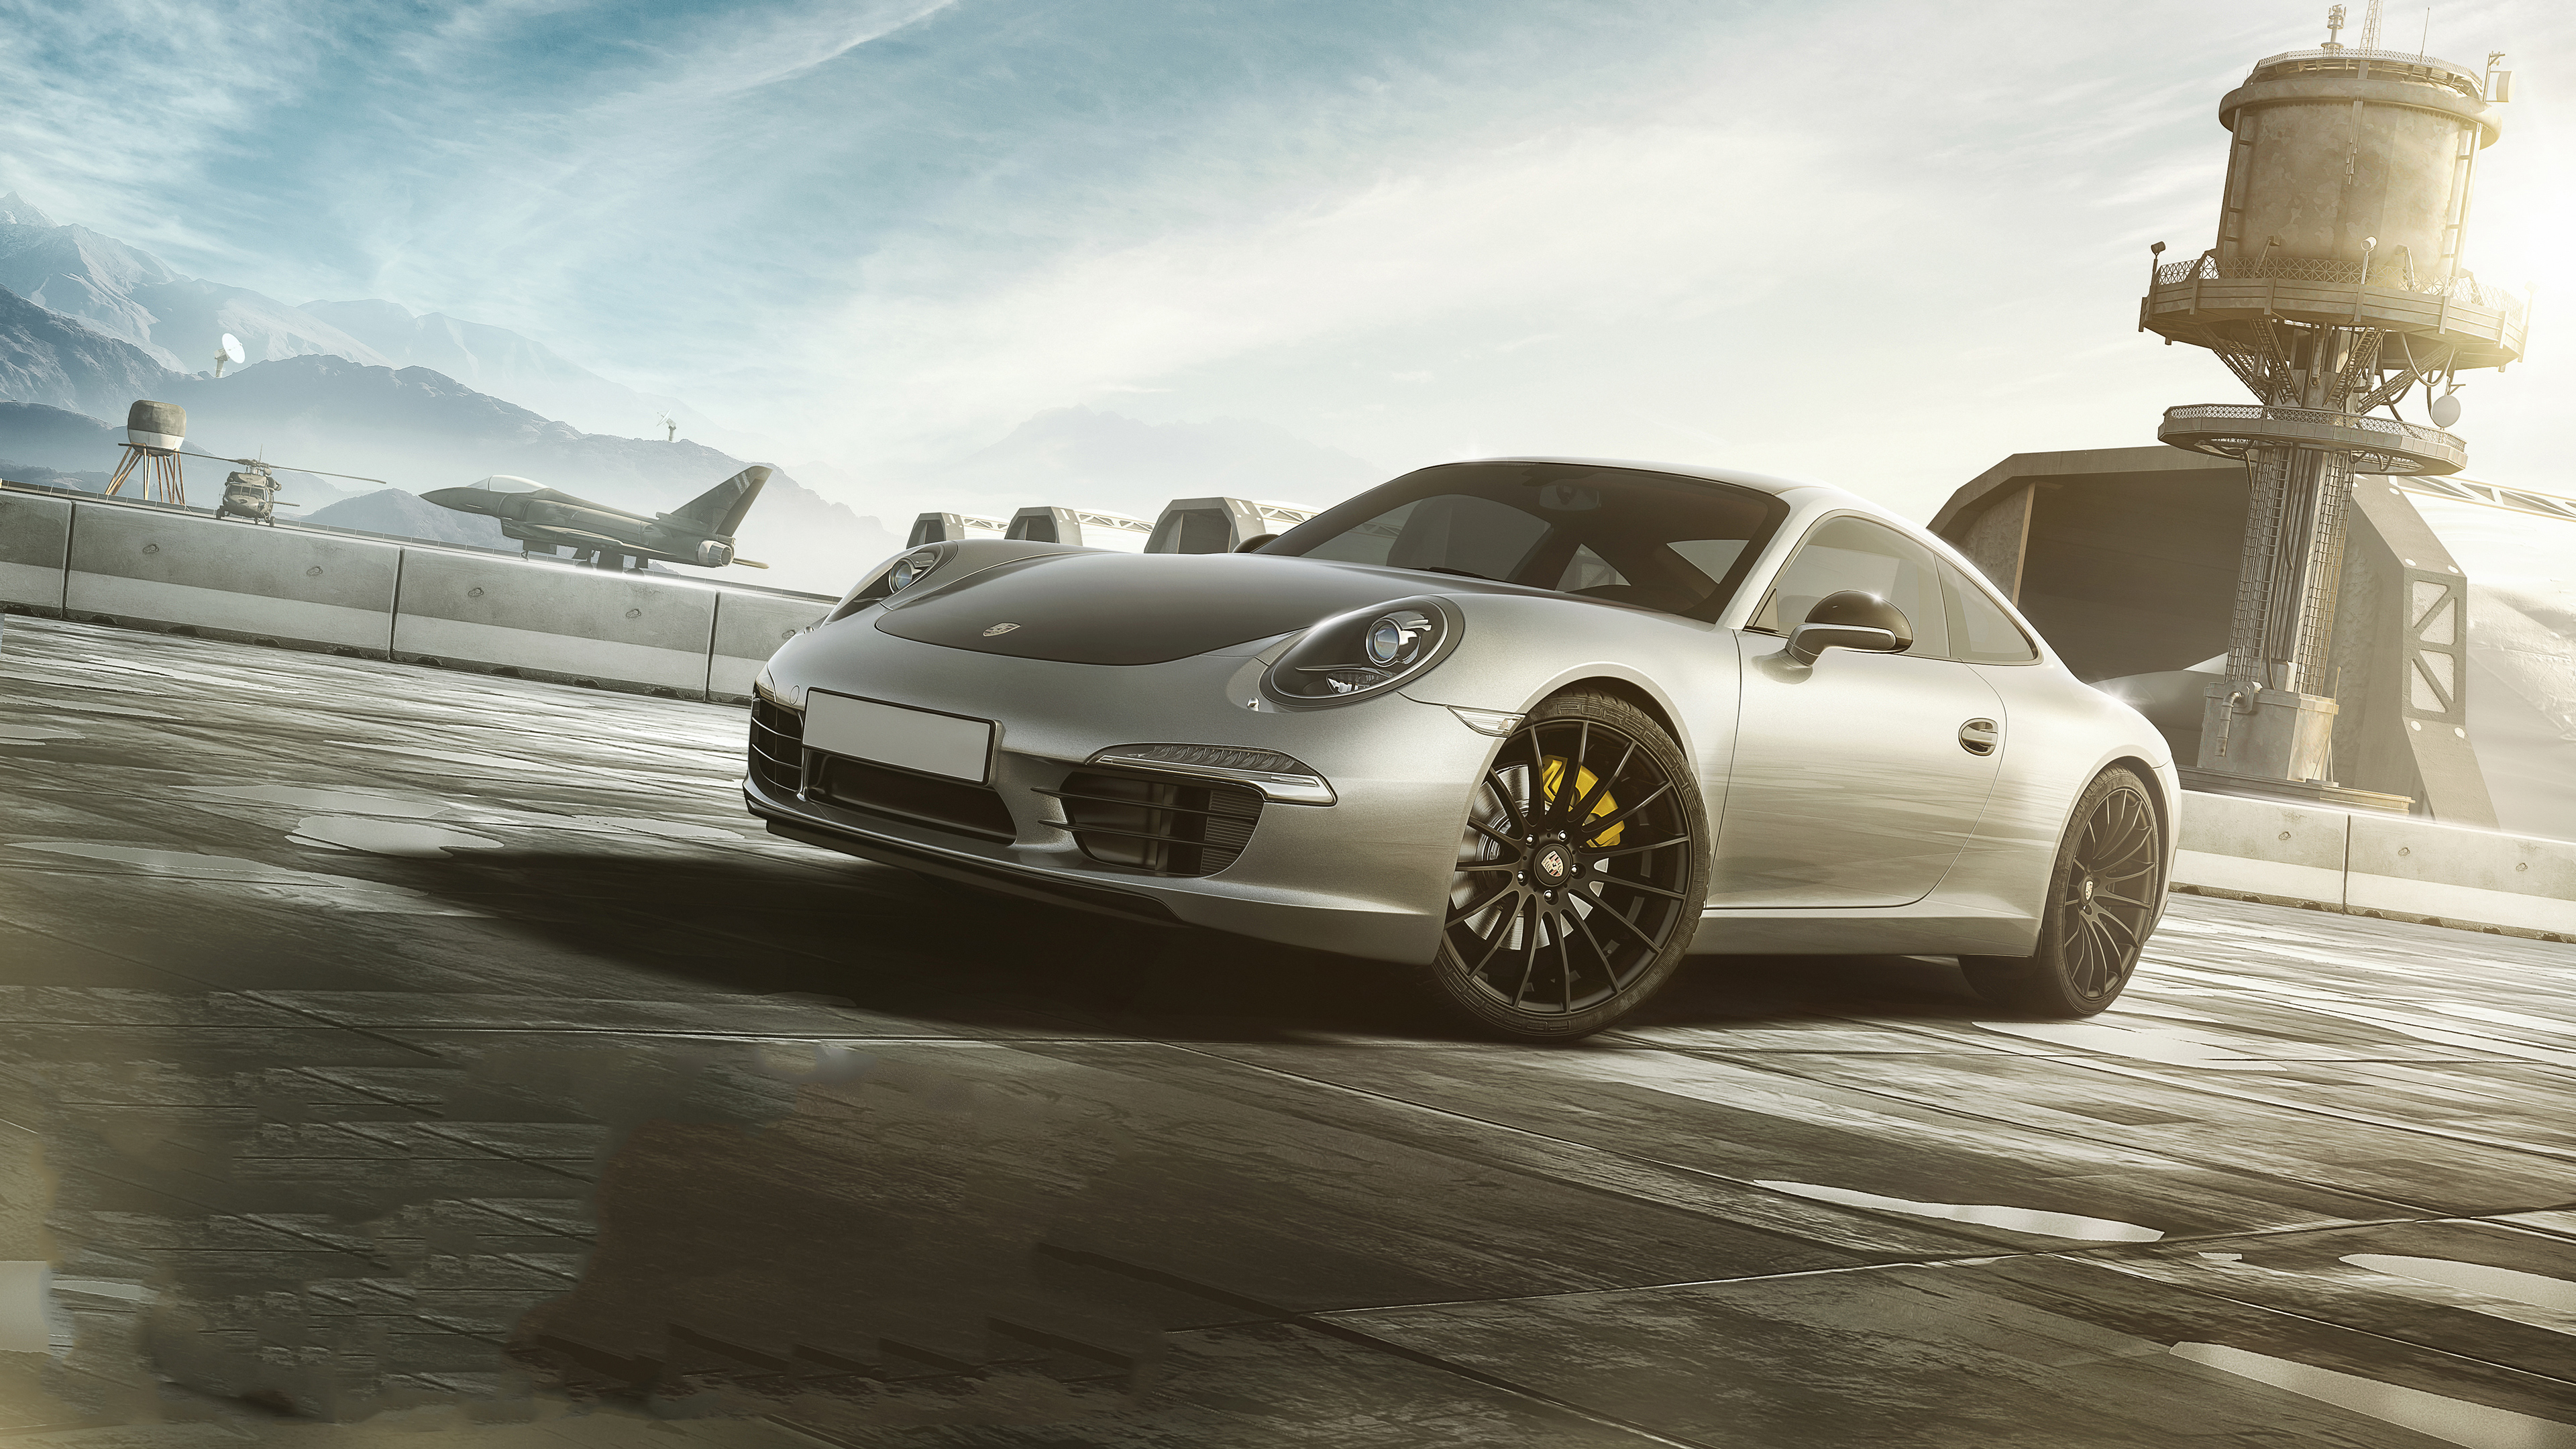 porsche 1562107990 - Porsche - porsche wallpapers, hd-wallpapers, cars wallpapers, behance wallpapers, 4k-wallpapers, 2019 cars wallpapers